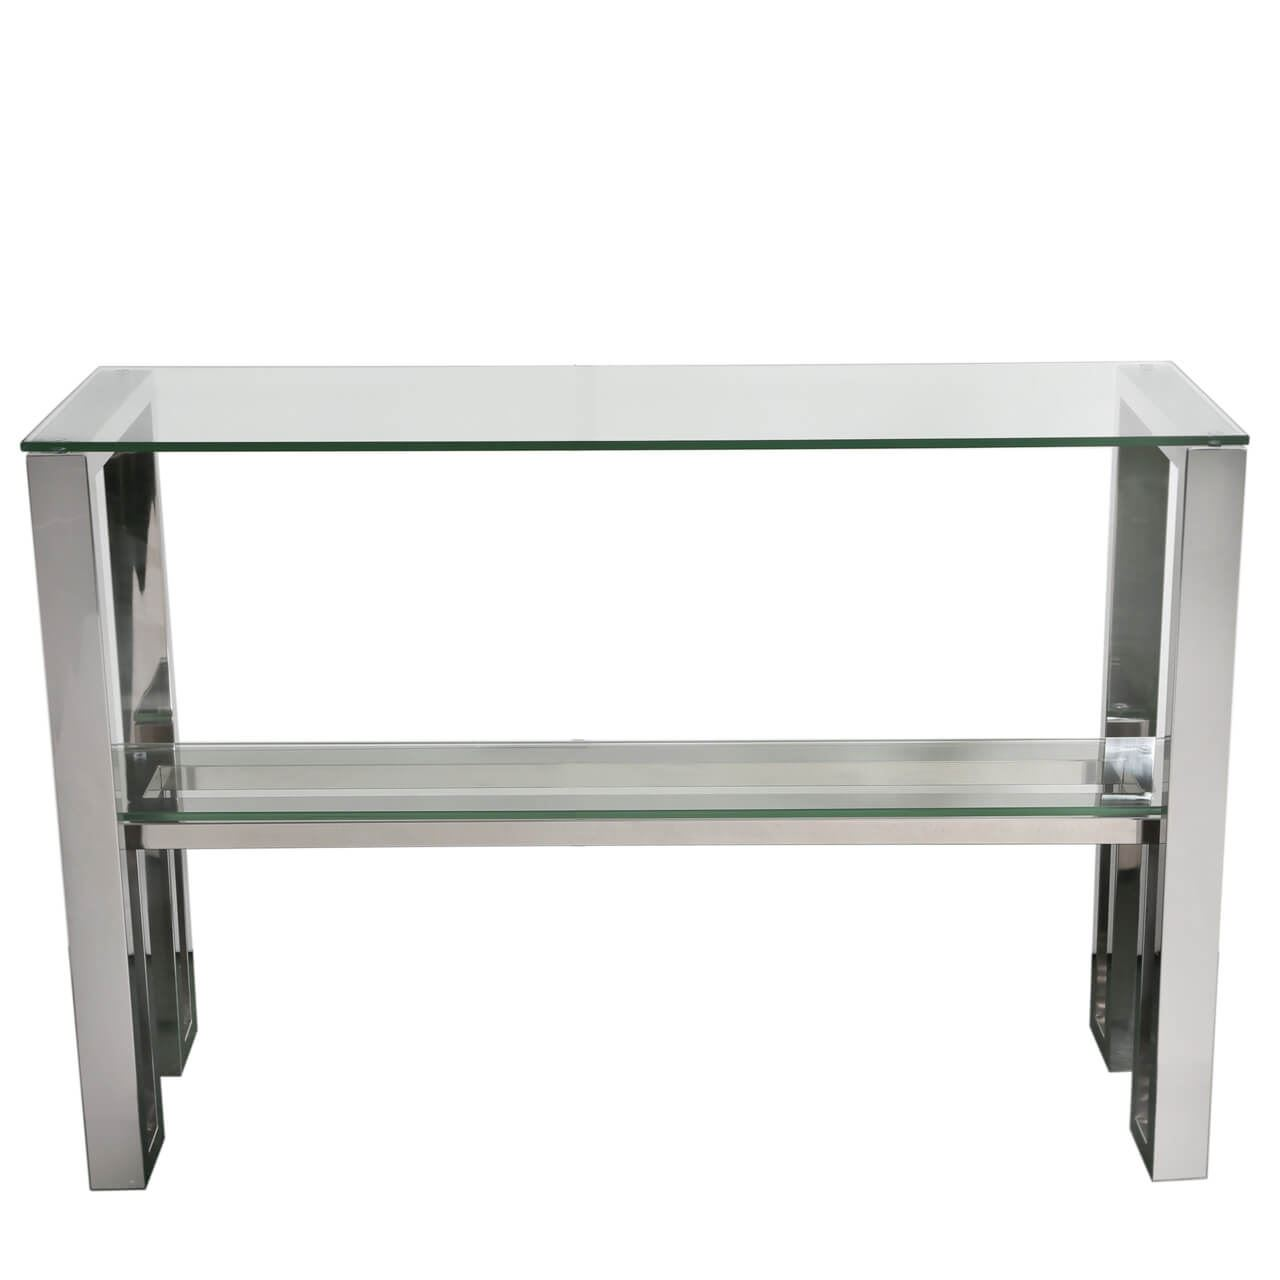 Stainless Steel Chrome Glass Console Table 5032203150317 Ebay